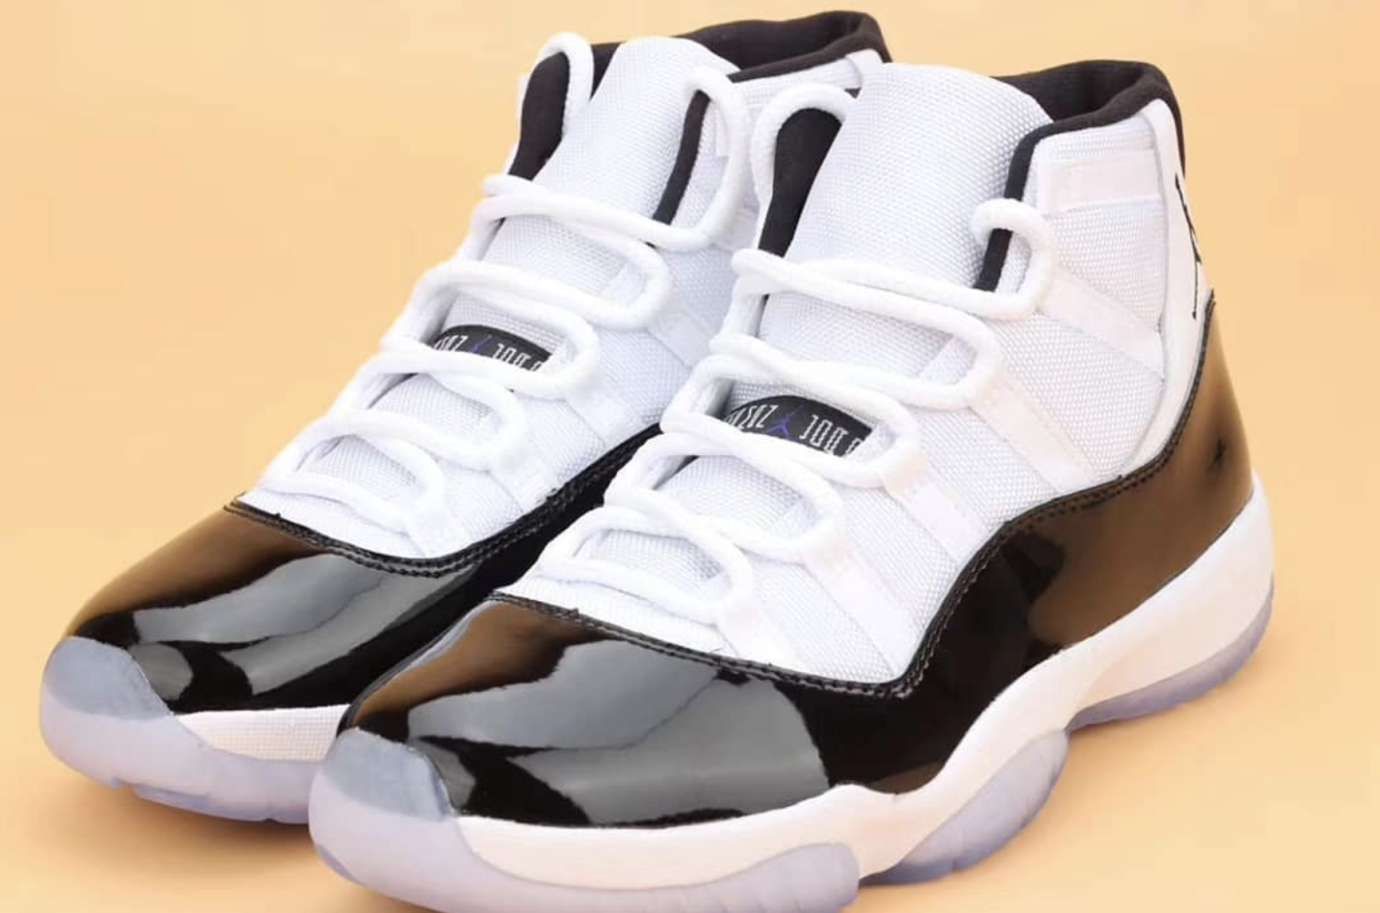 4604c86d97 Air Jordan 11 'Concord' 2018 378037-100 (Pair) | sneakerhead in 2019 ...